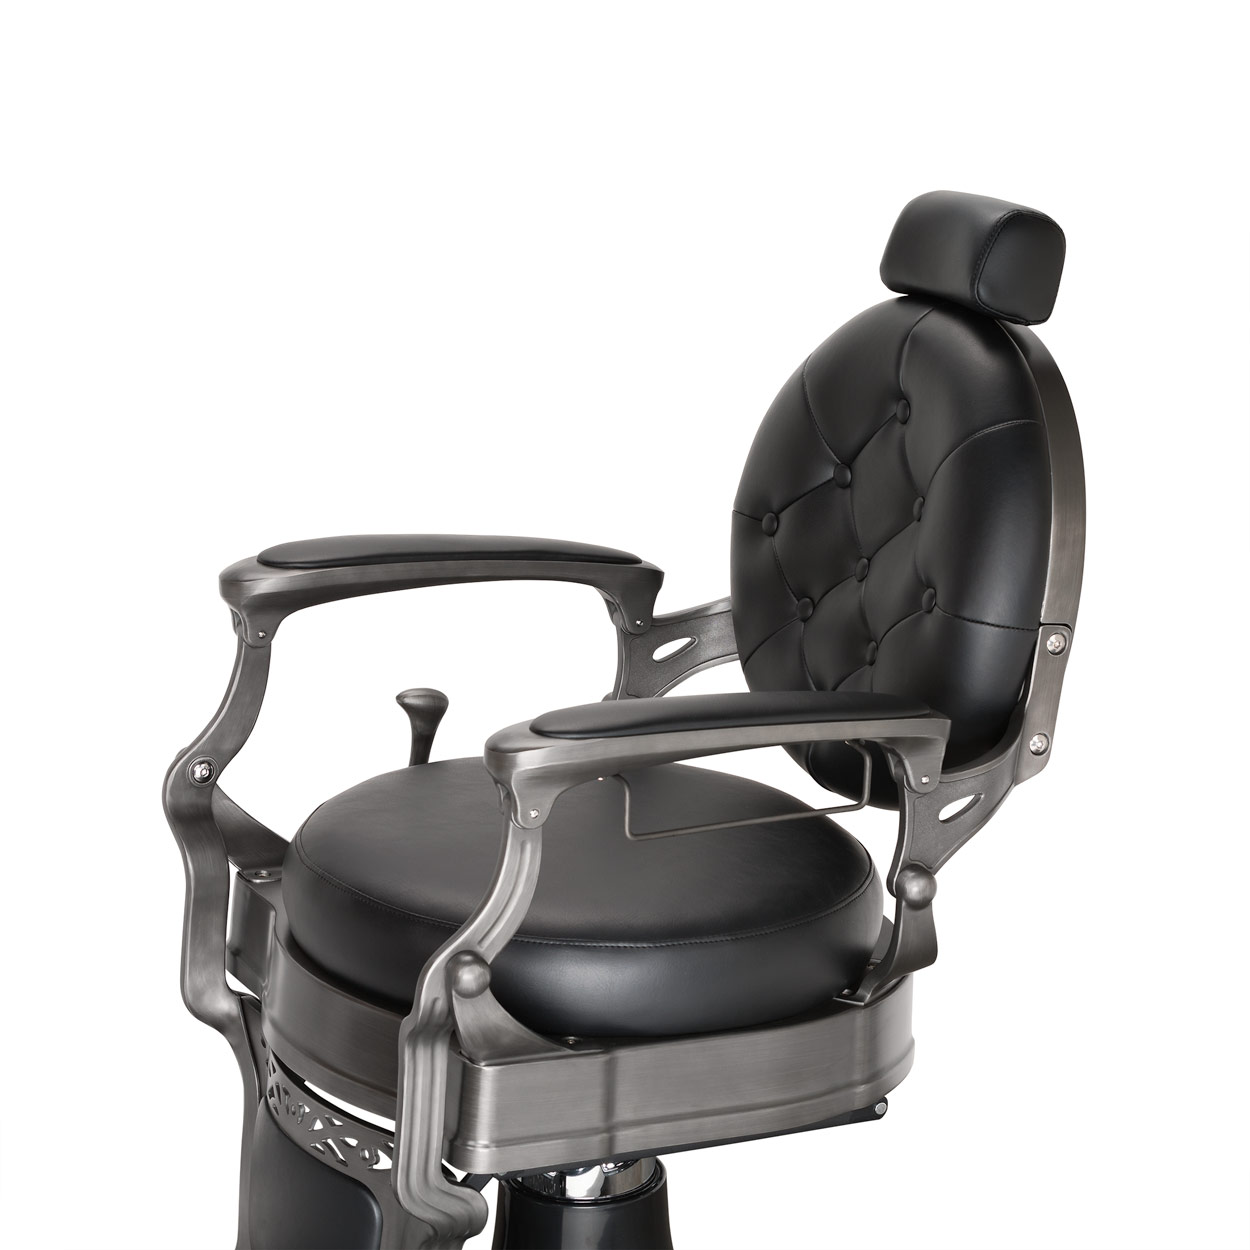 Wexford Vintage Barber Chair - Gun Metal Finish alternative product image 5